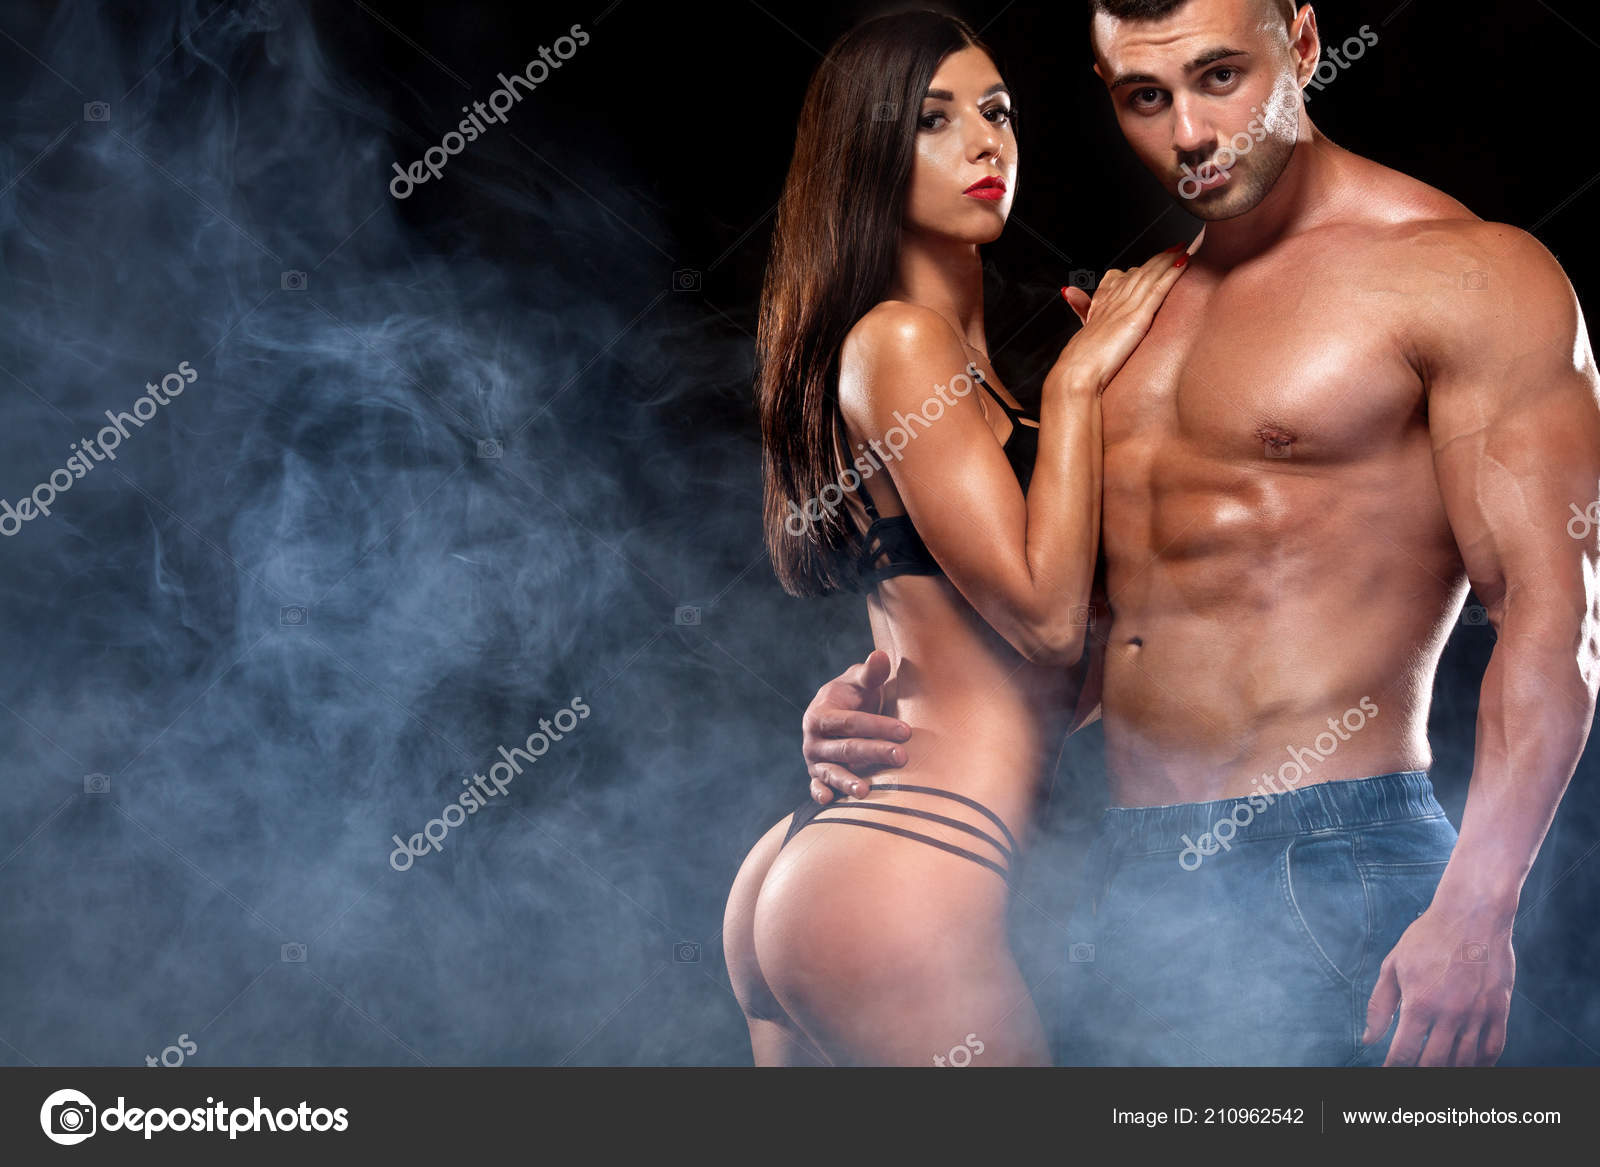 Sexy pictures of women and men